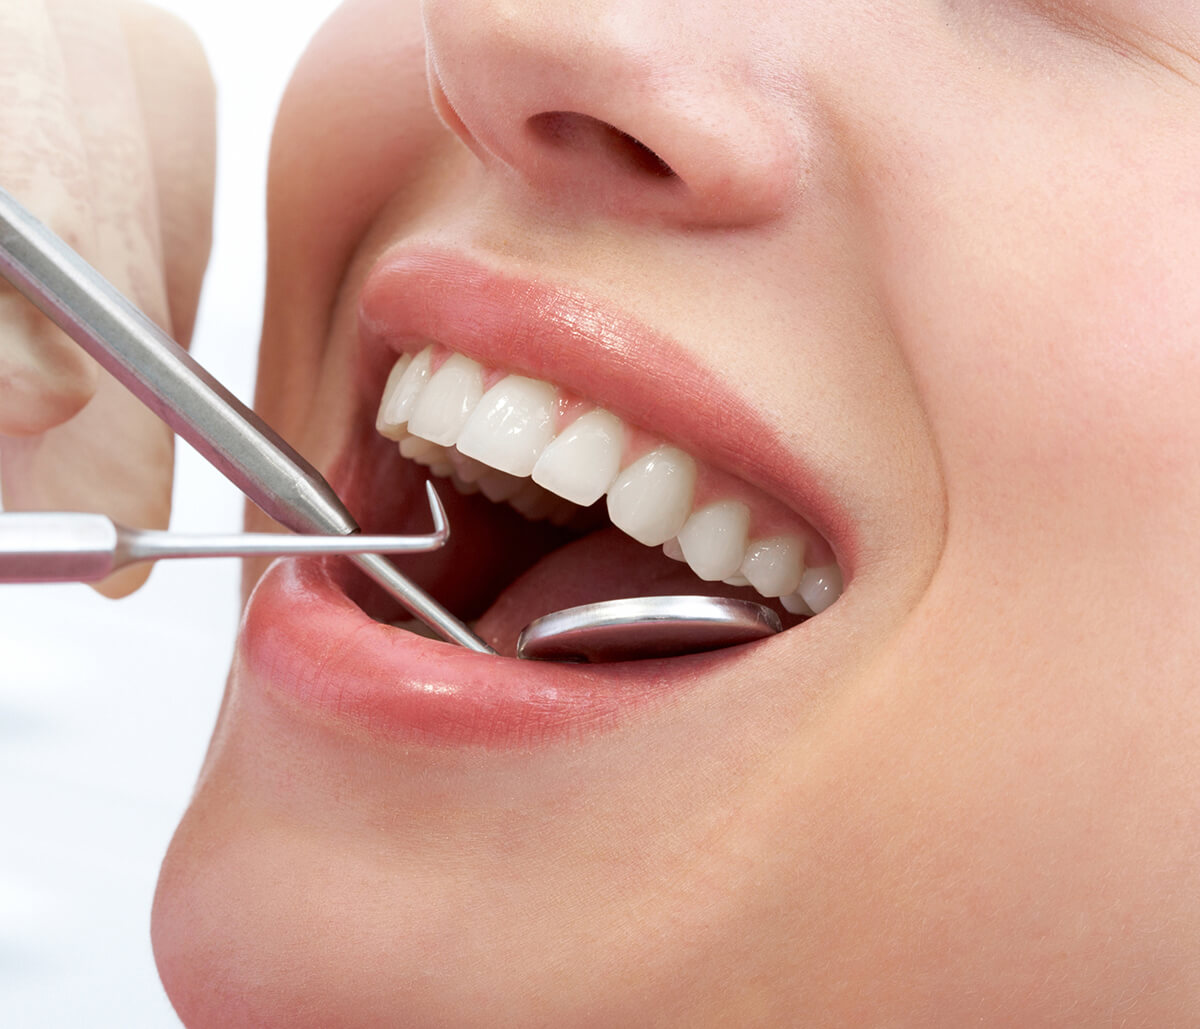 Dentist Explains how the 17th Third Molar Affects Overall Health in Fort Lauderdale, FL Area